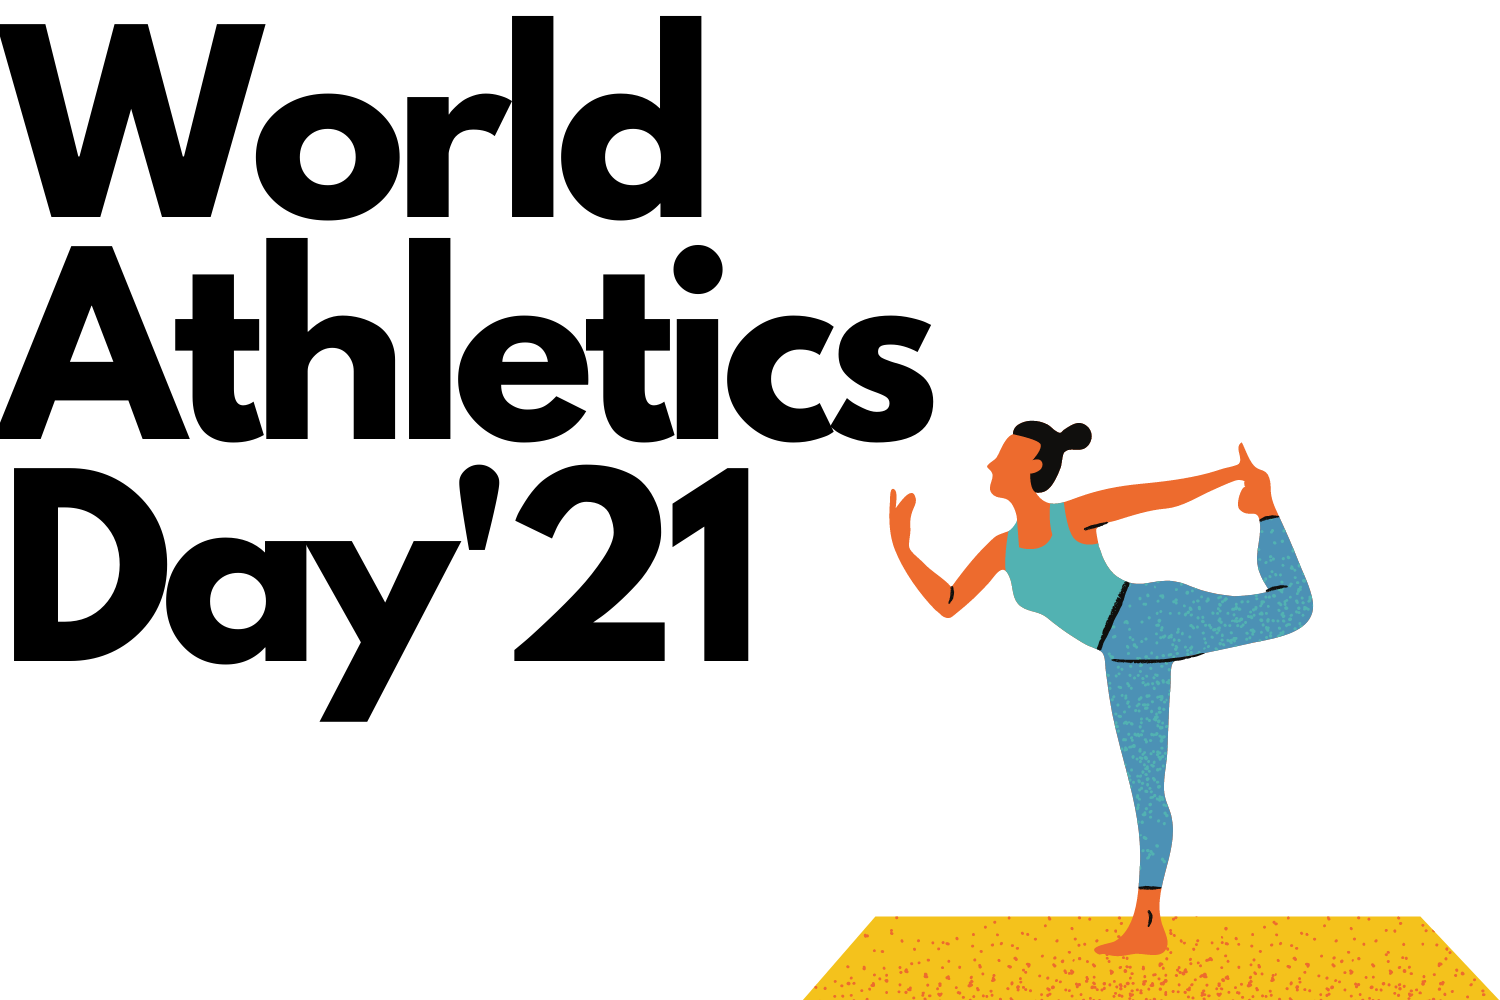 World Athletics Day'21 – A Day to Celebrate Physical Health